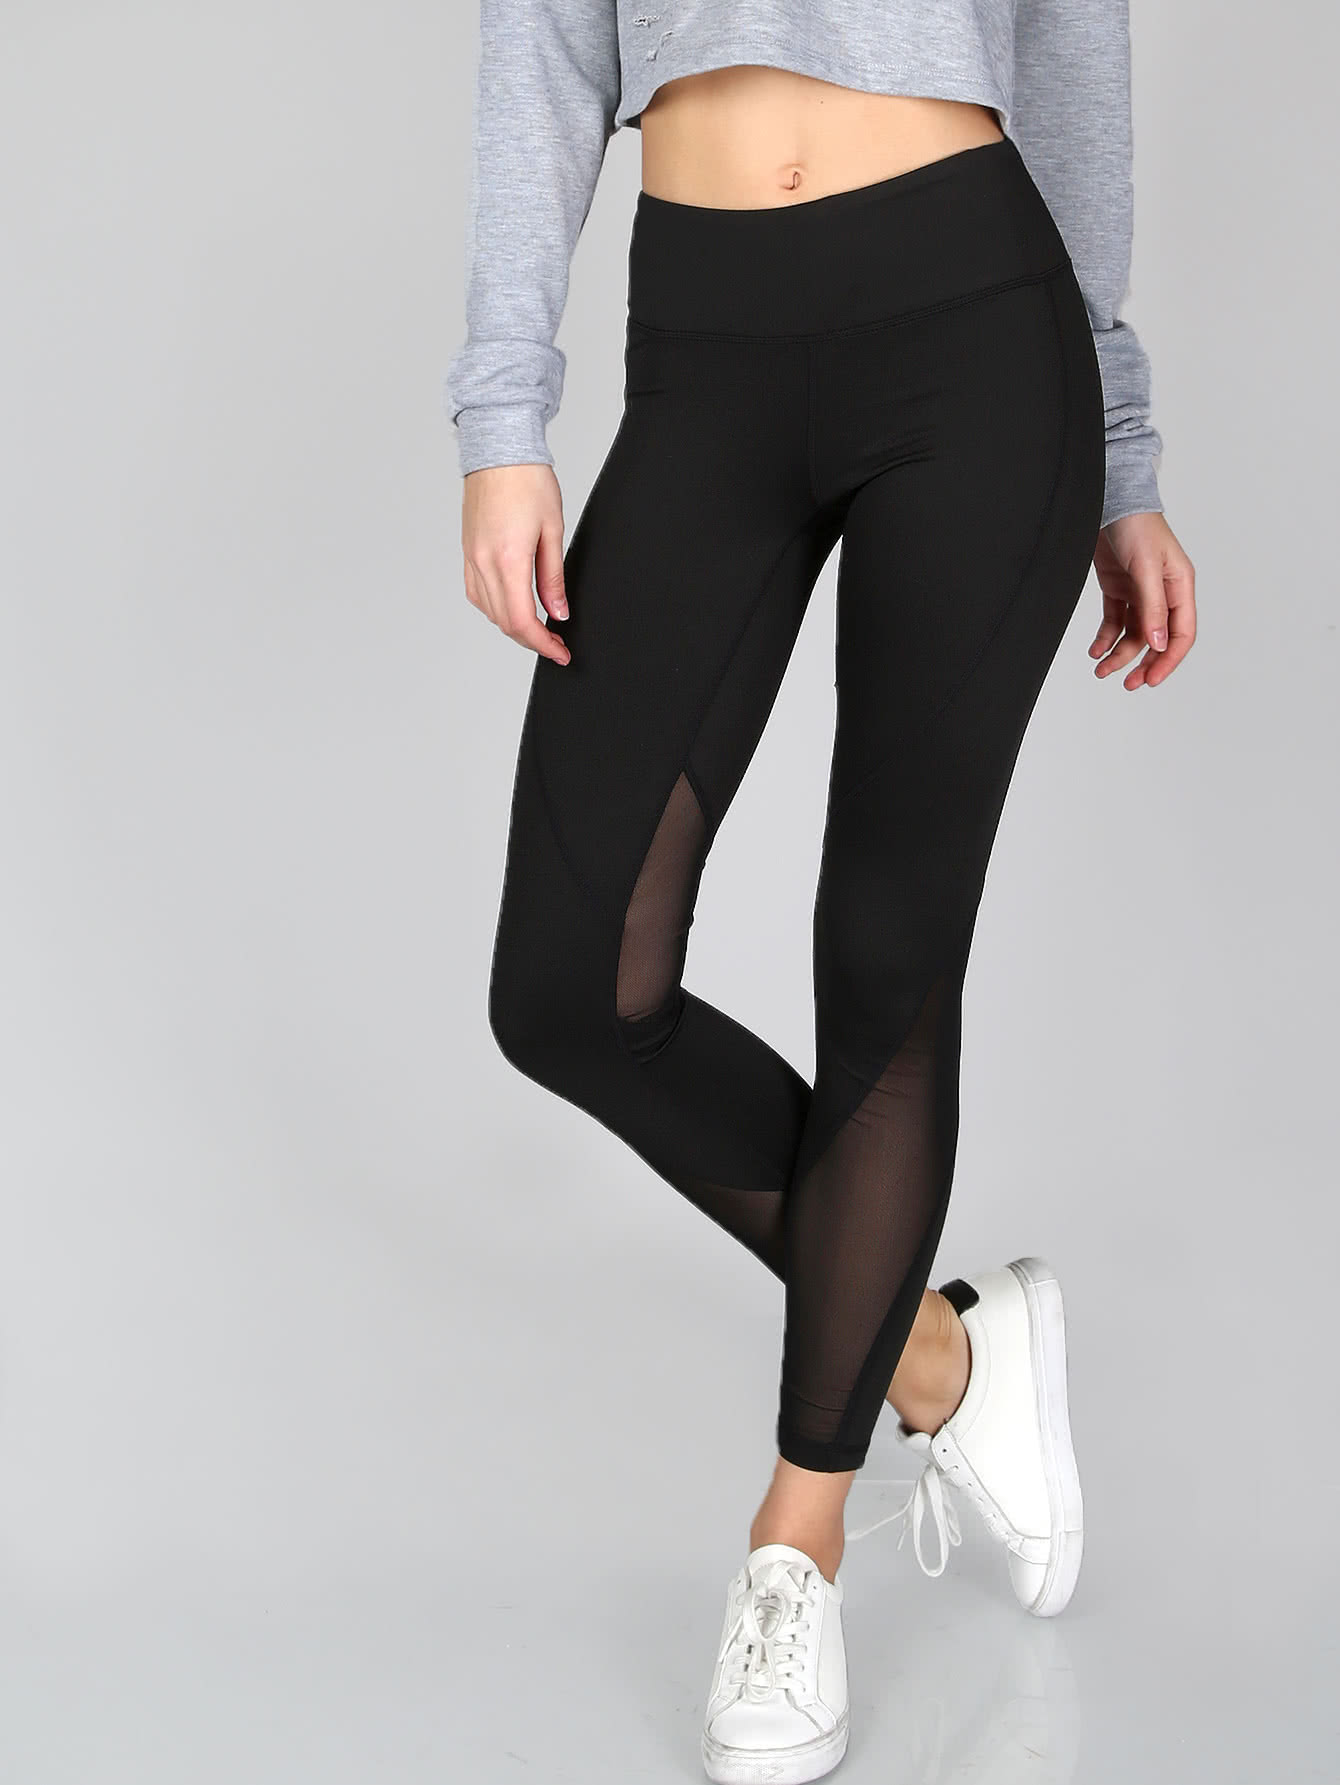 Thick Sheer Mesh Panel Leggings sheer plus size mesh panel workout leggings